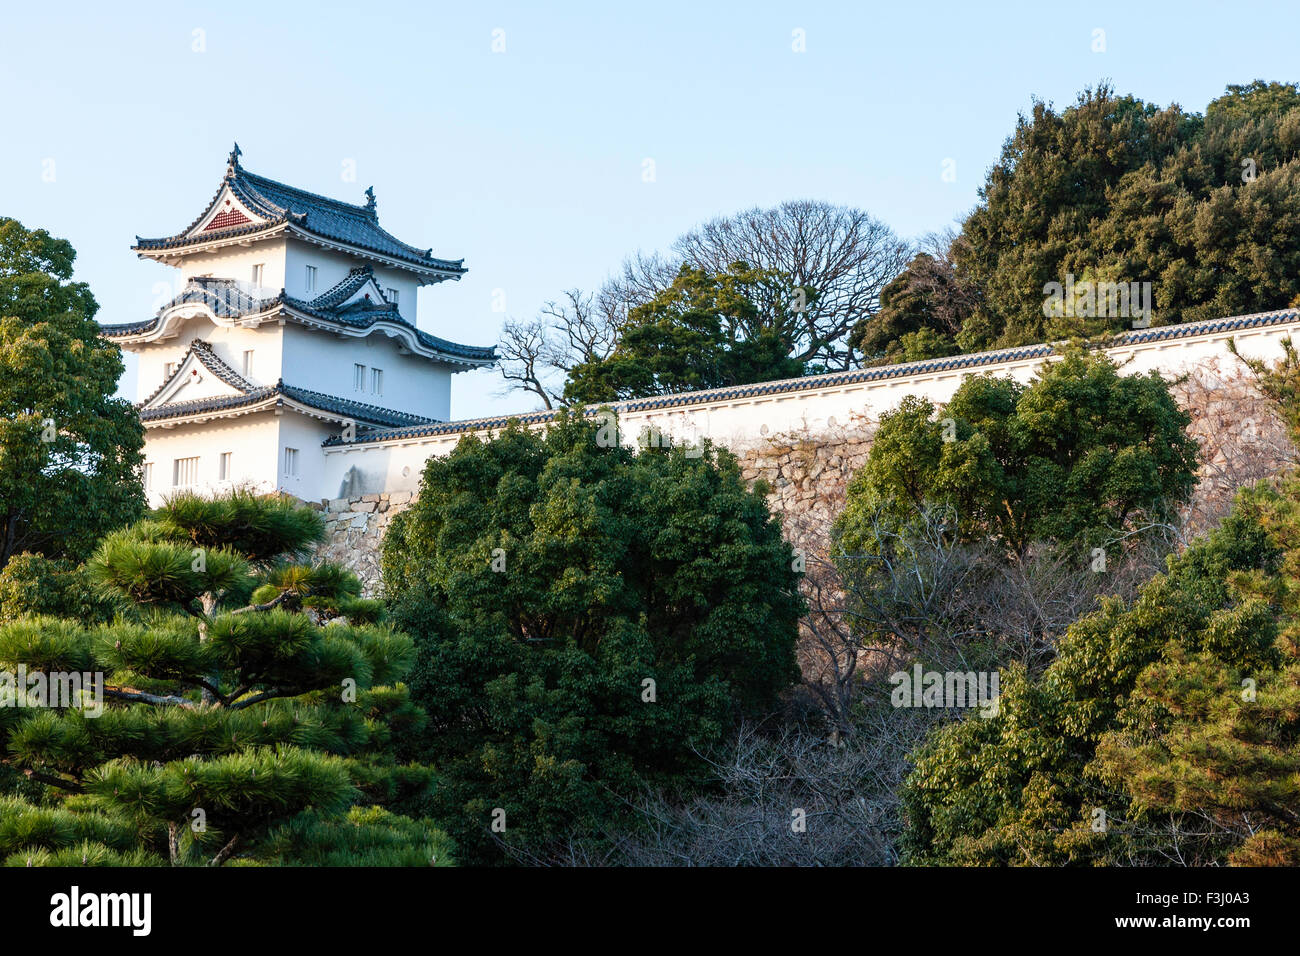 Japan, Akaski Castle, Hitsujisaru Yagura, tower, with chidorihafu gable on the first level, karahafu on the second - Stock Image